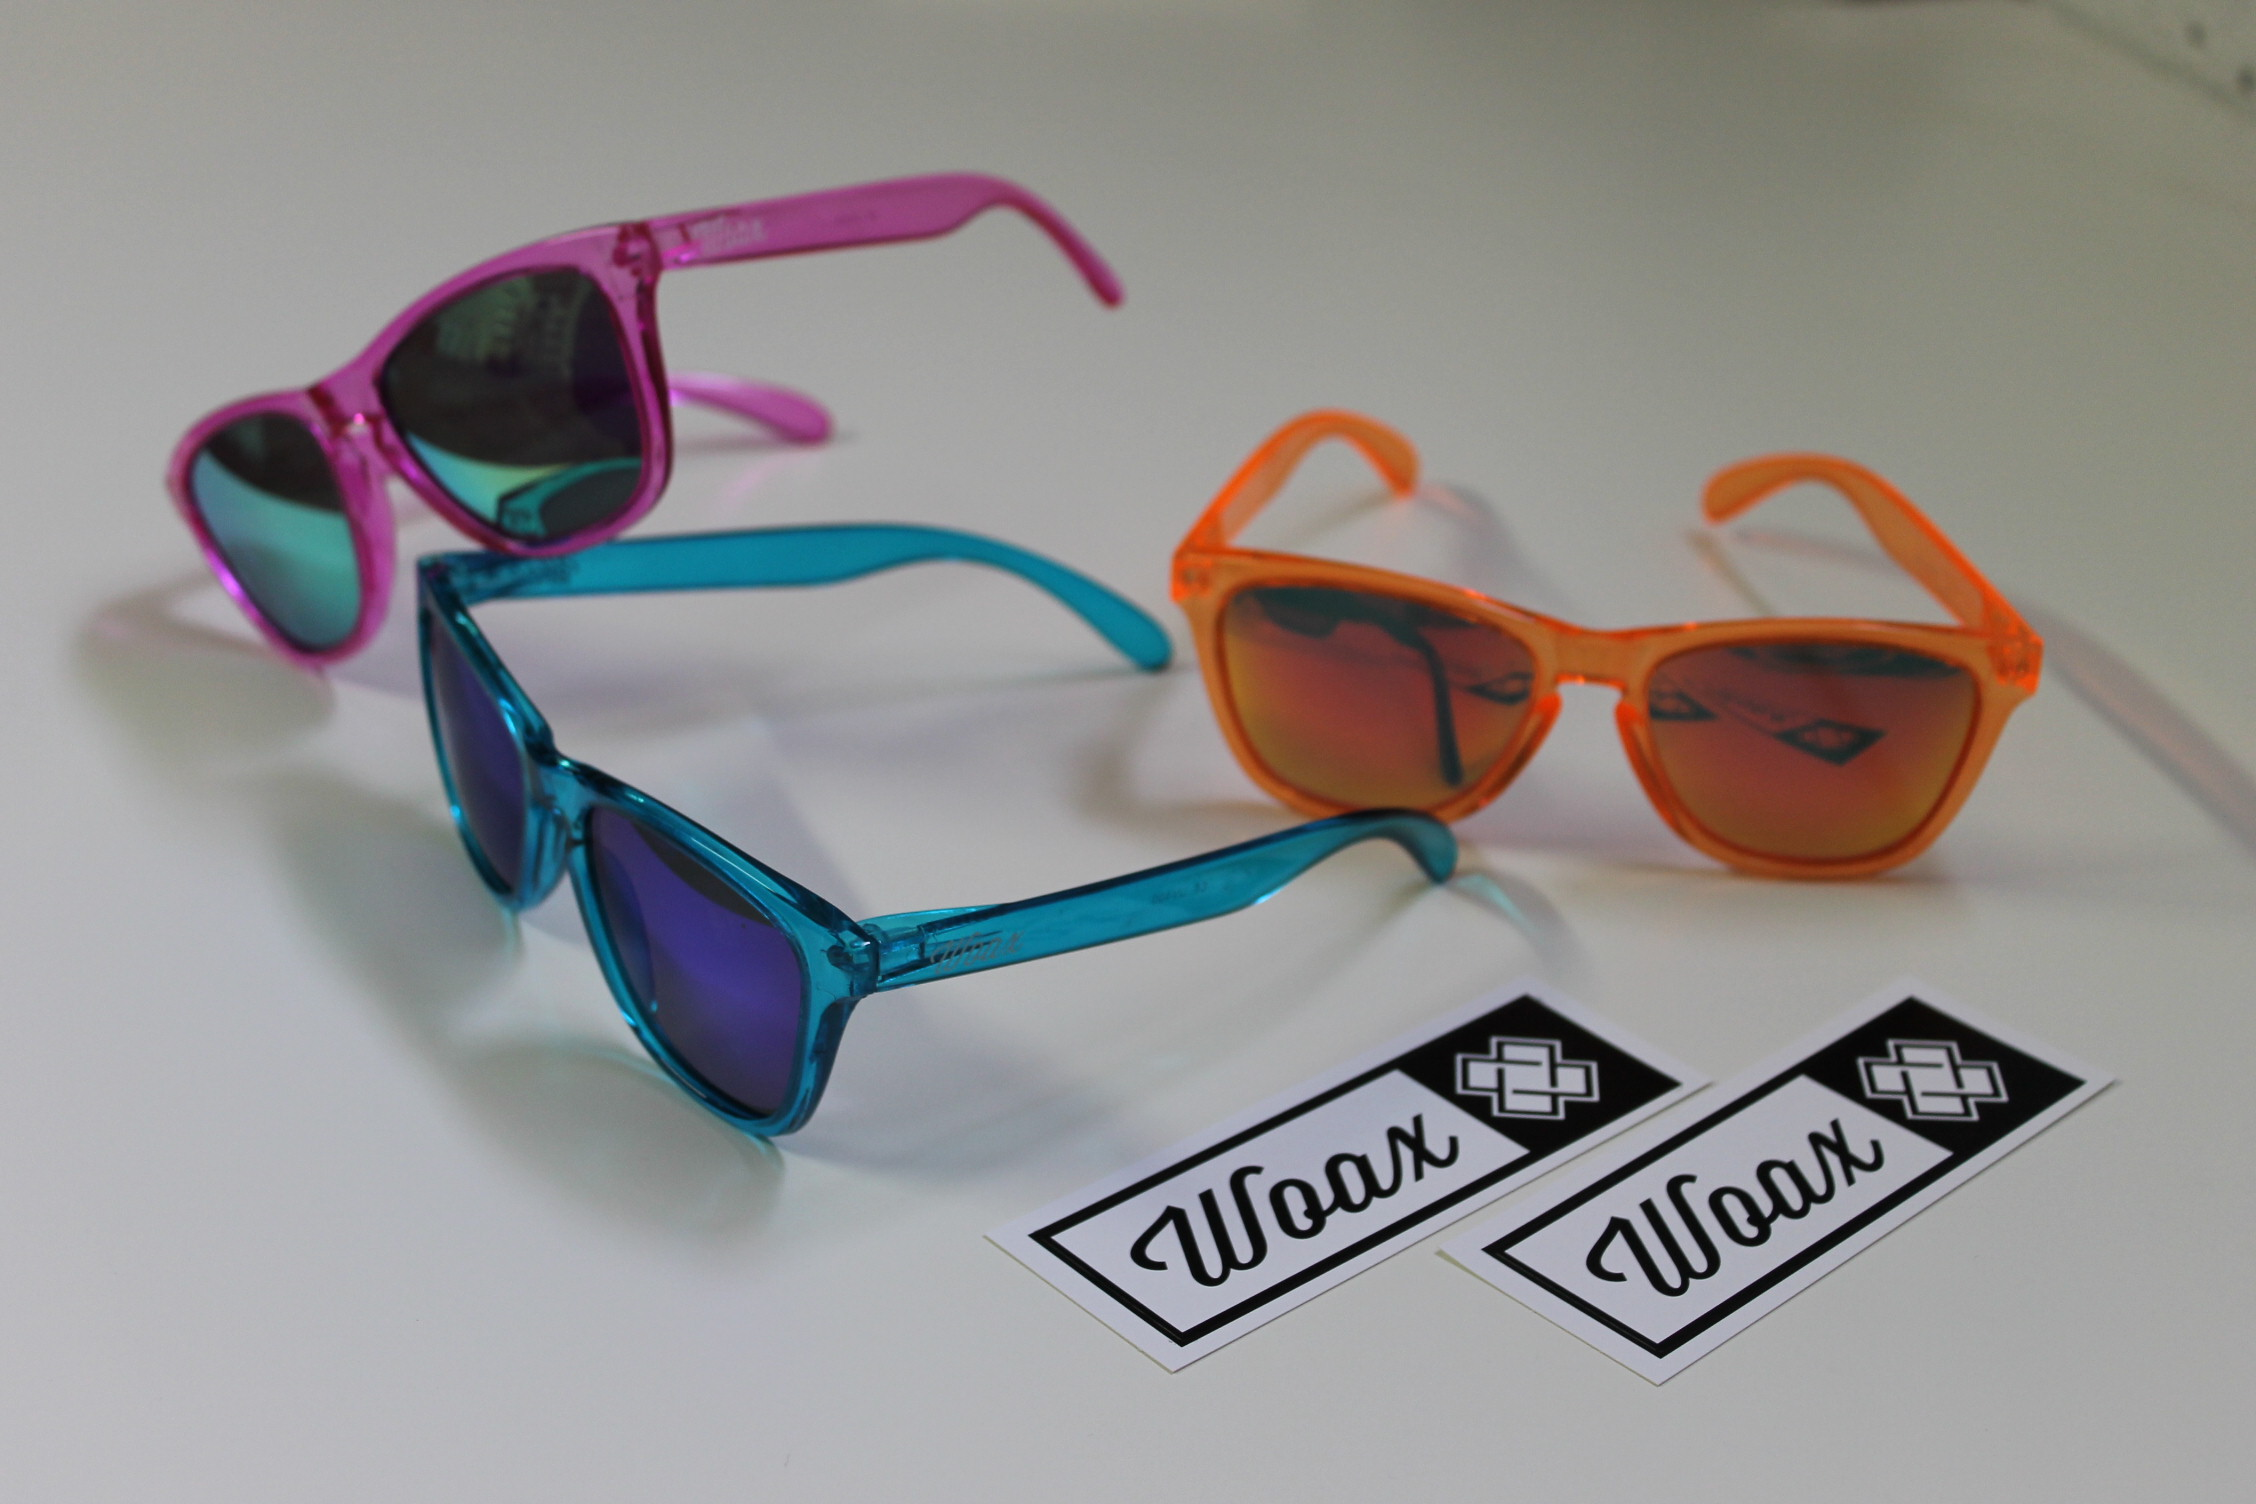 woax_sunglasses